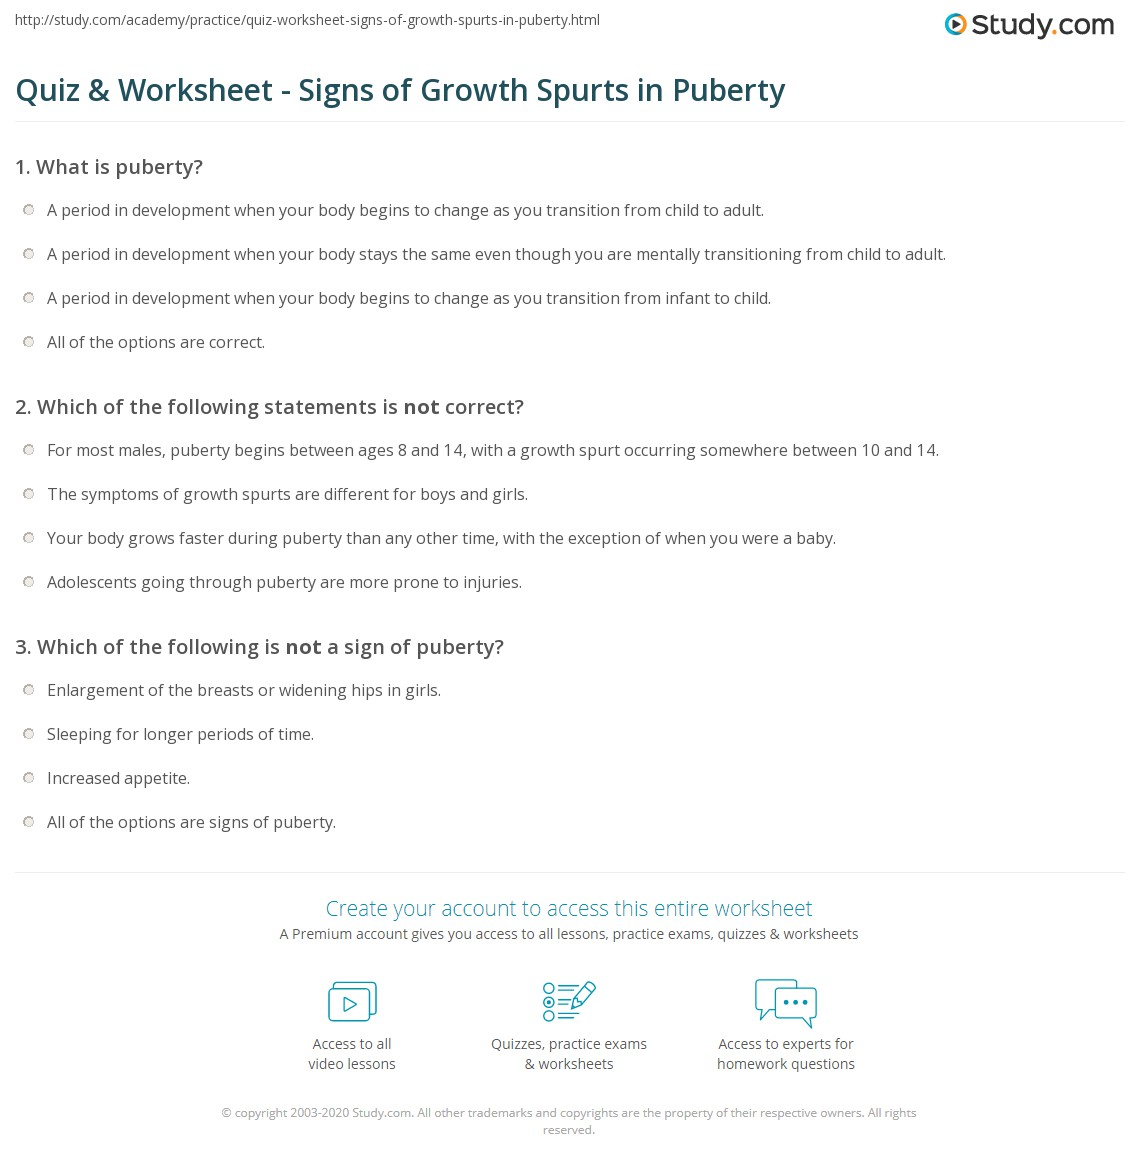 Quiz & Worksheet Signs of Growth Spurts in Puberty